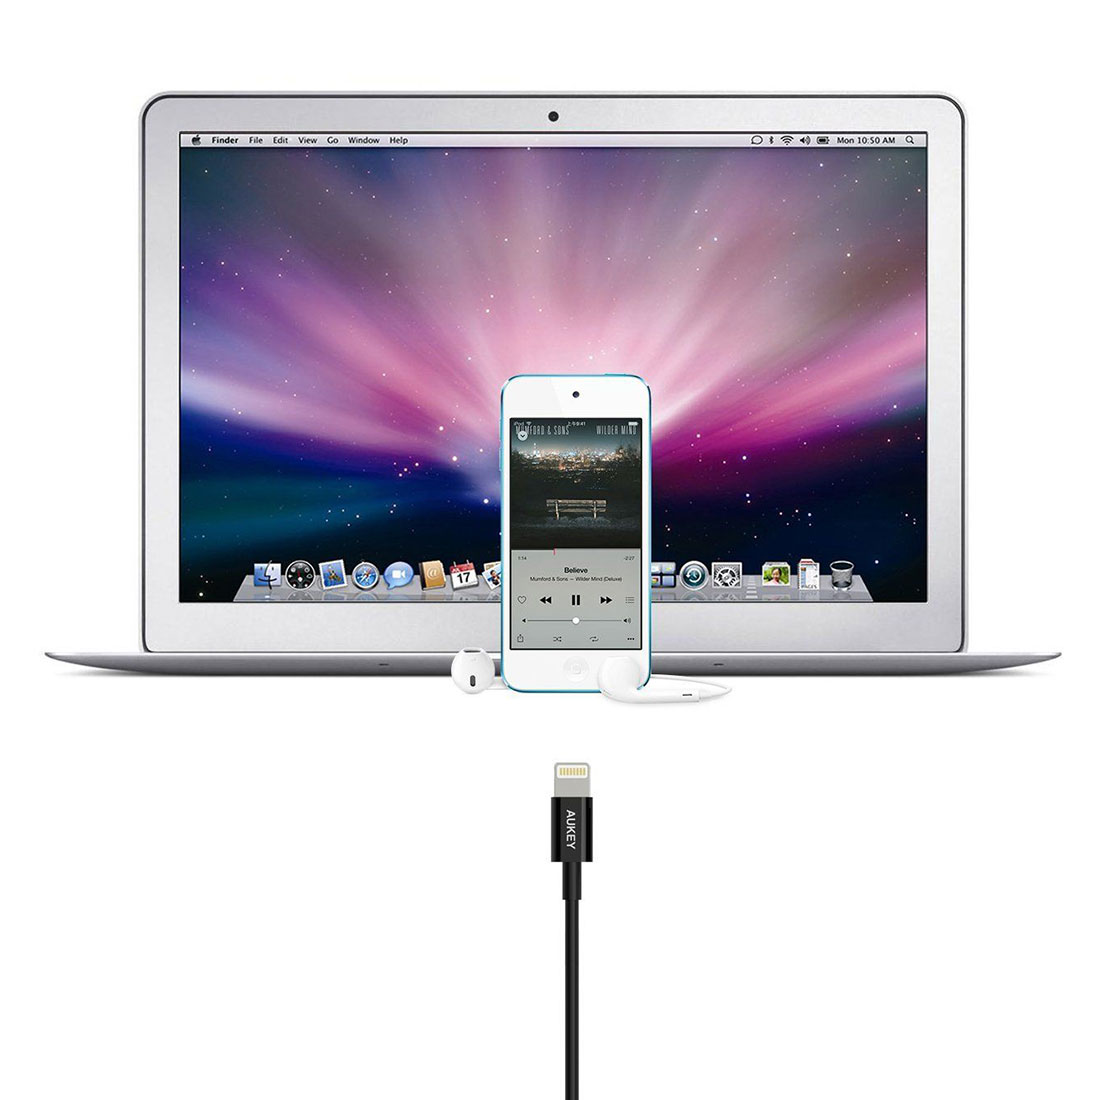 Cáp Aukey Lightning MFI To Usb 8 Pin Sync Charge Cable CB -D8